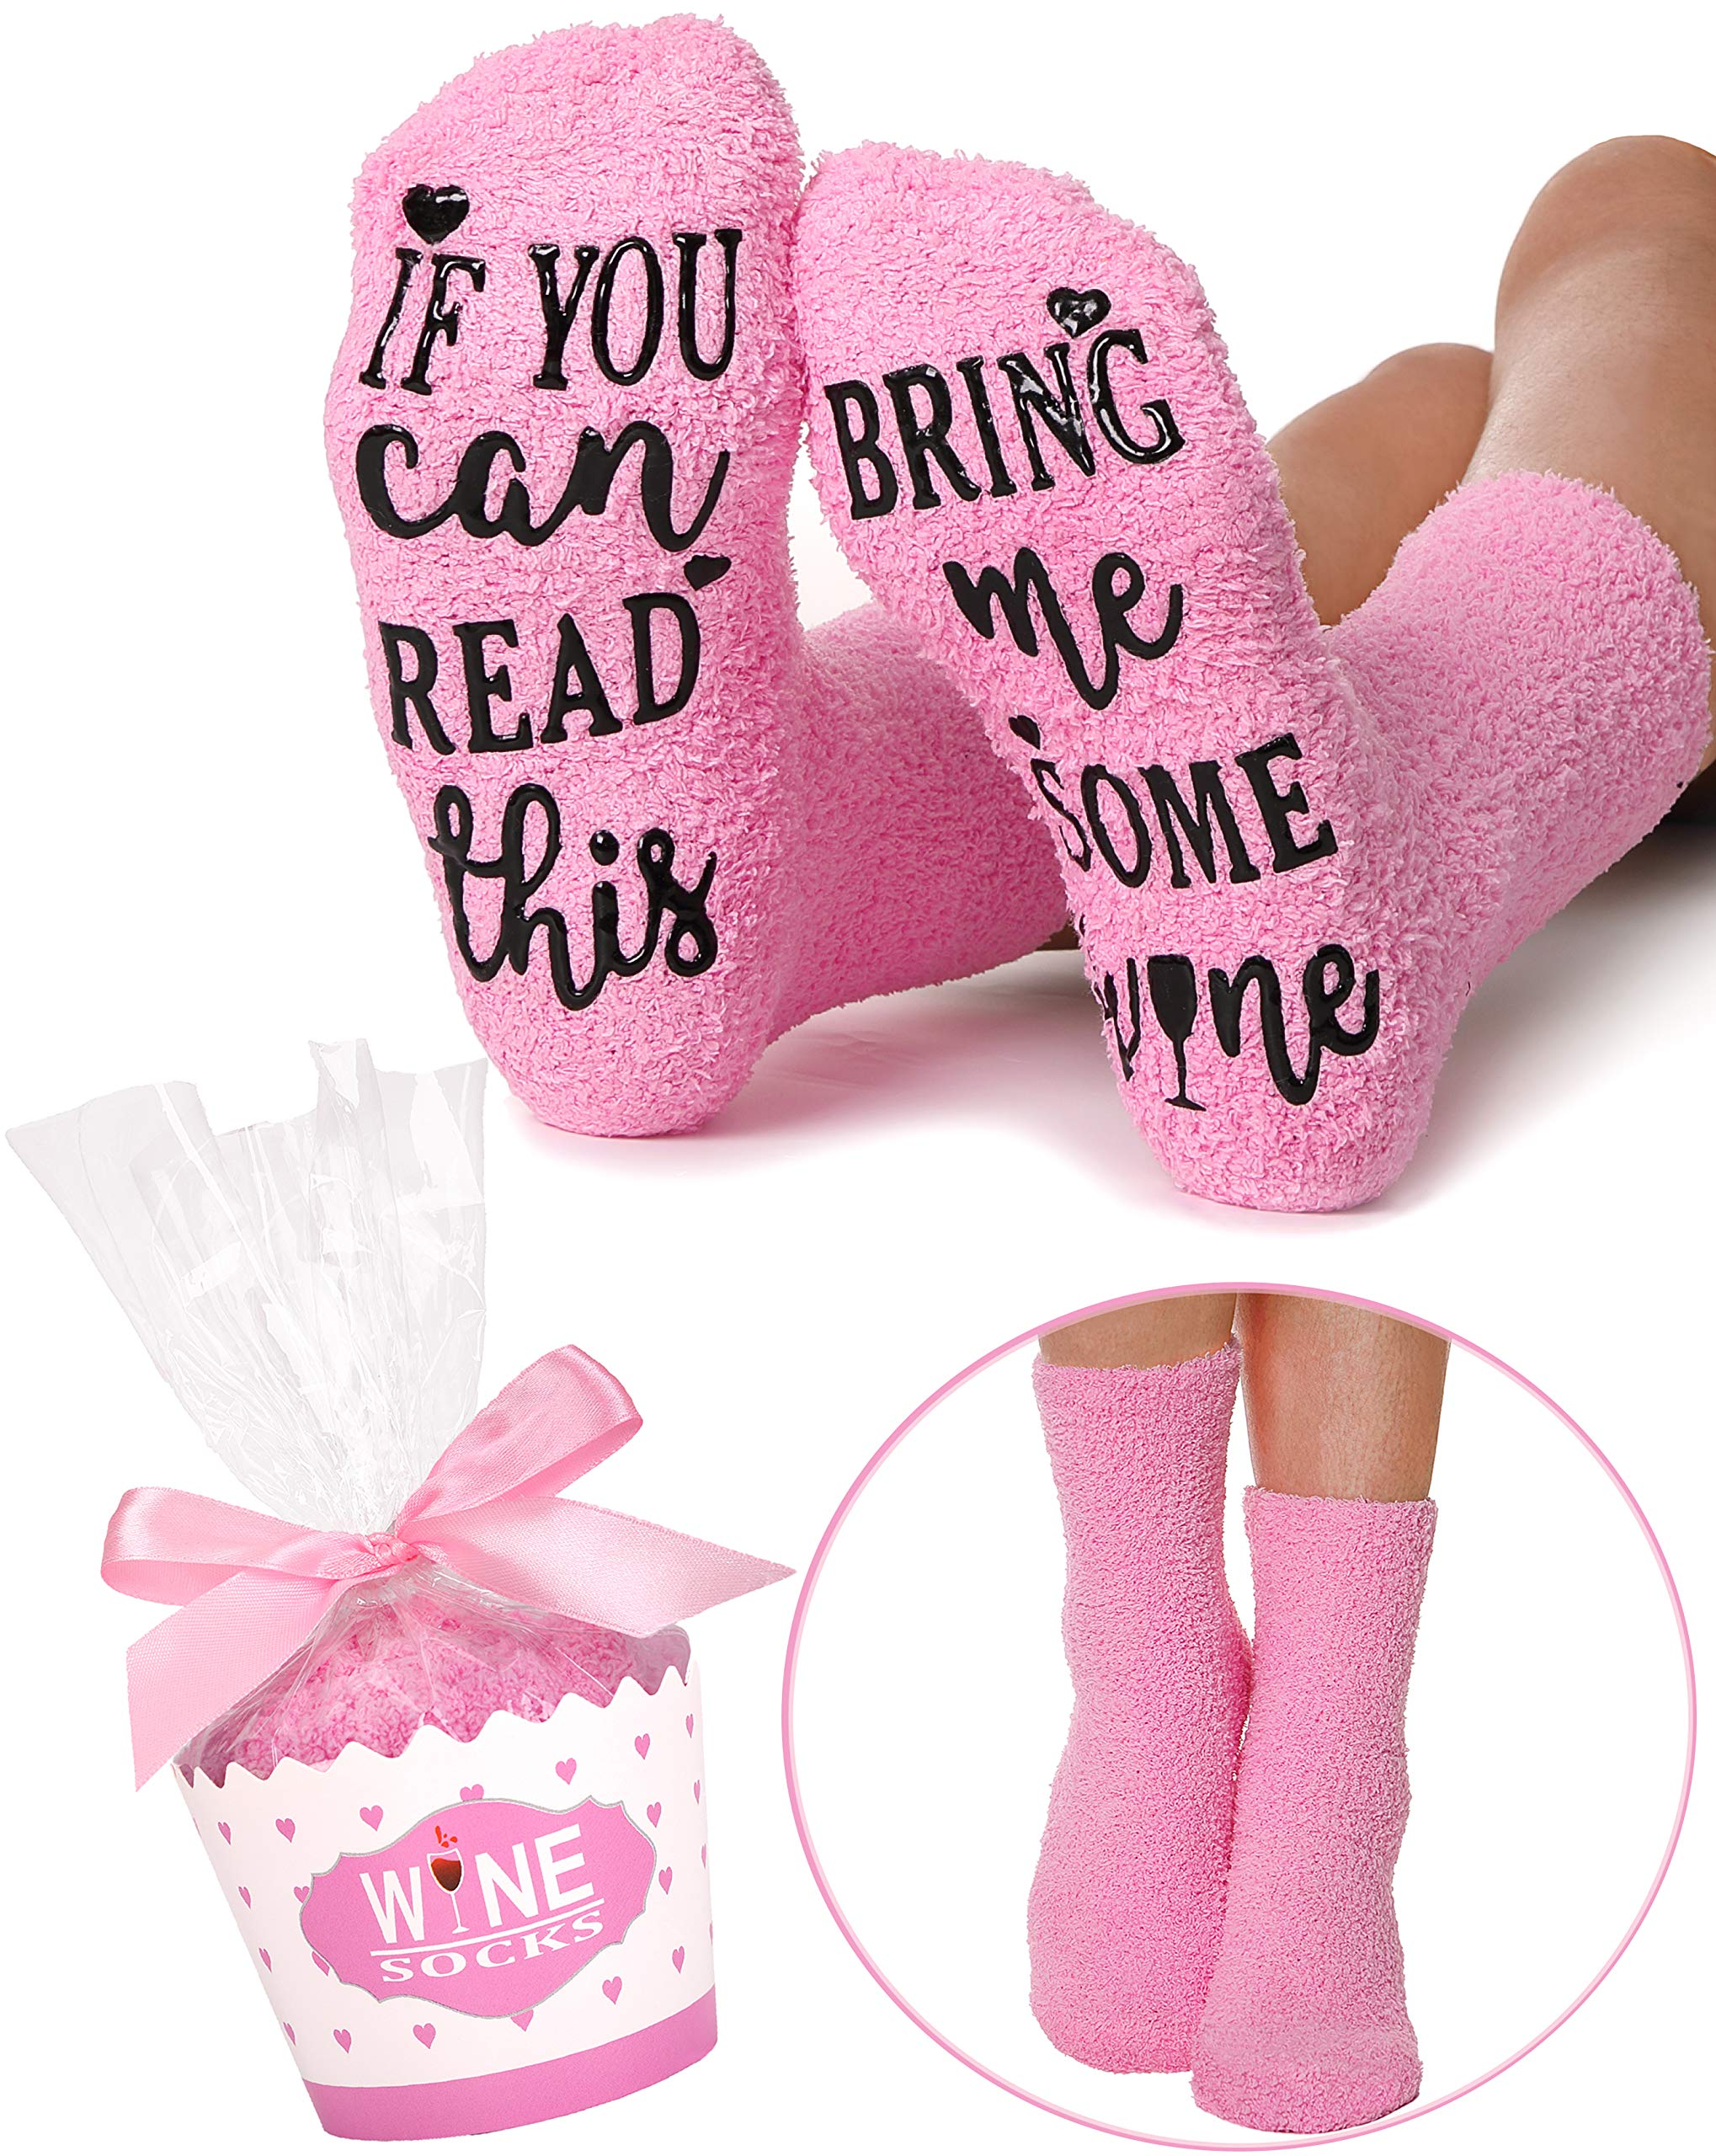 If You Can Read This Bring Me Some Wine Socks Novelty Fuzzy Funny Socks Christmas Gift (Wine) (Pink)